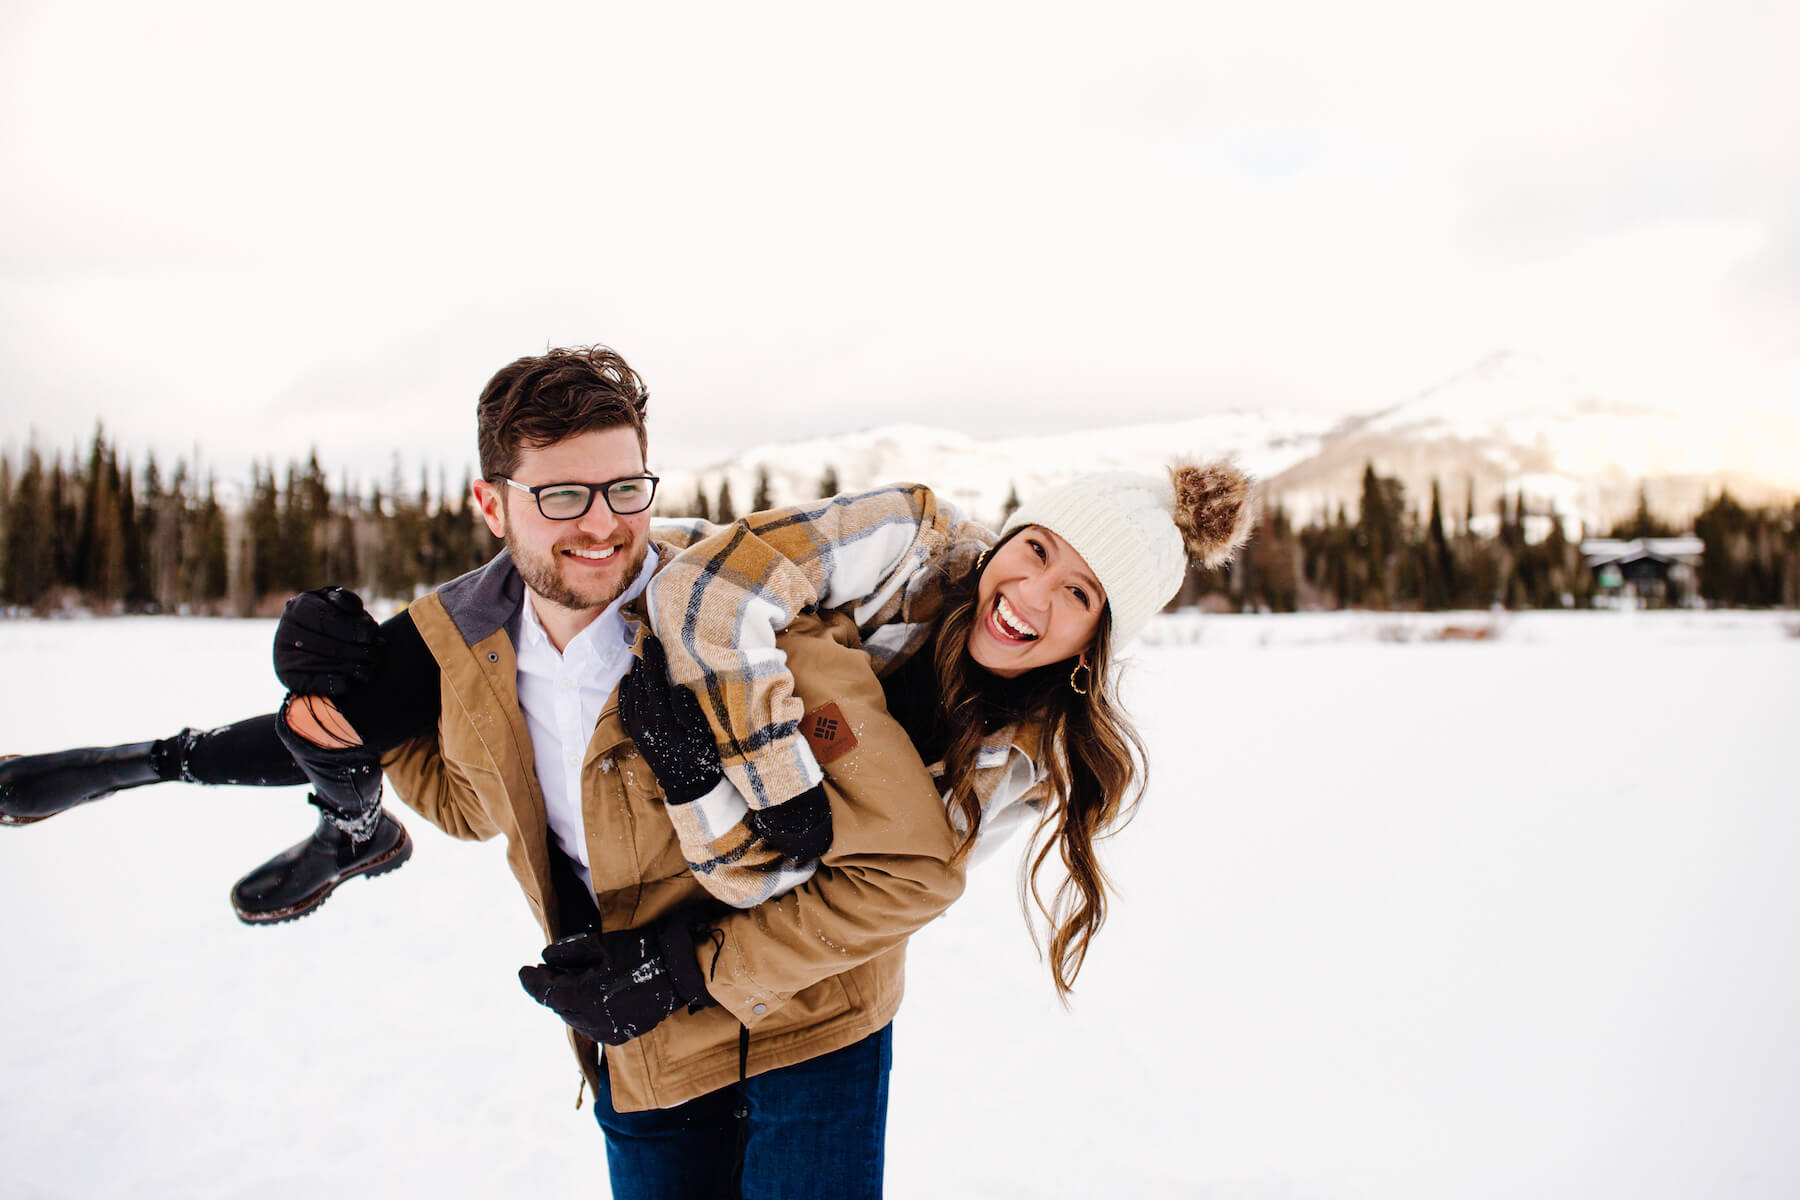 Top 10 Places to Take Photos in Salt Lake City & Park City